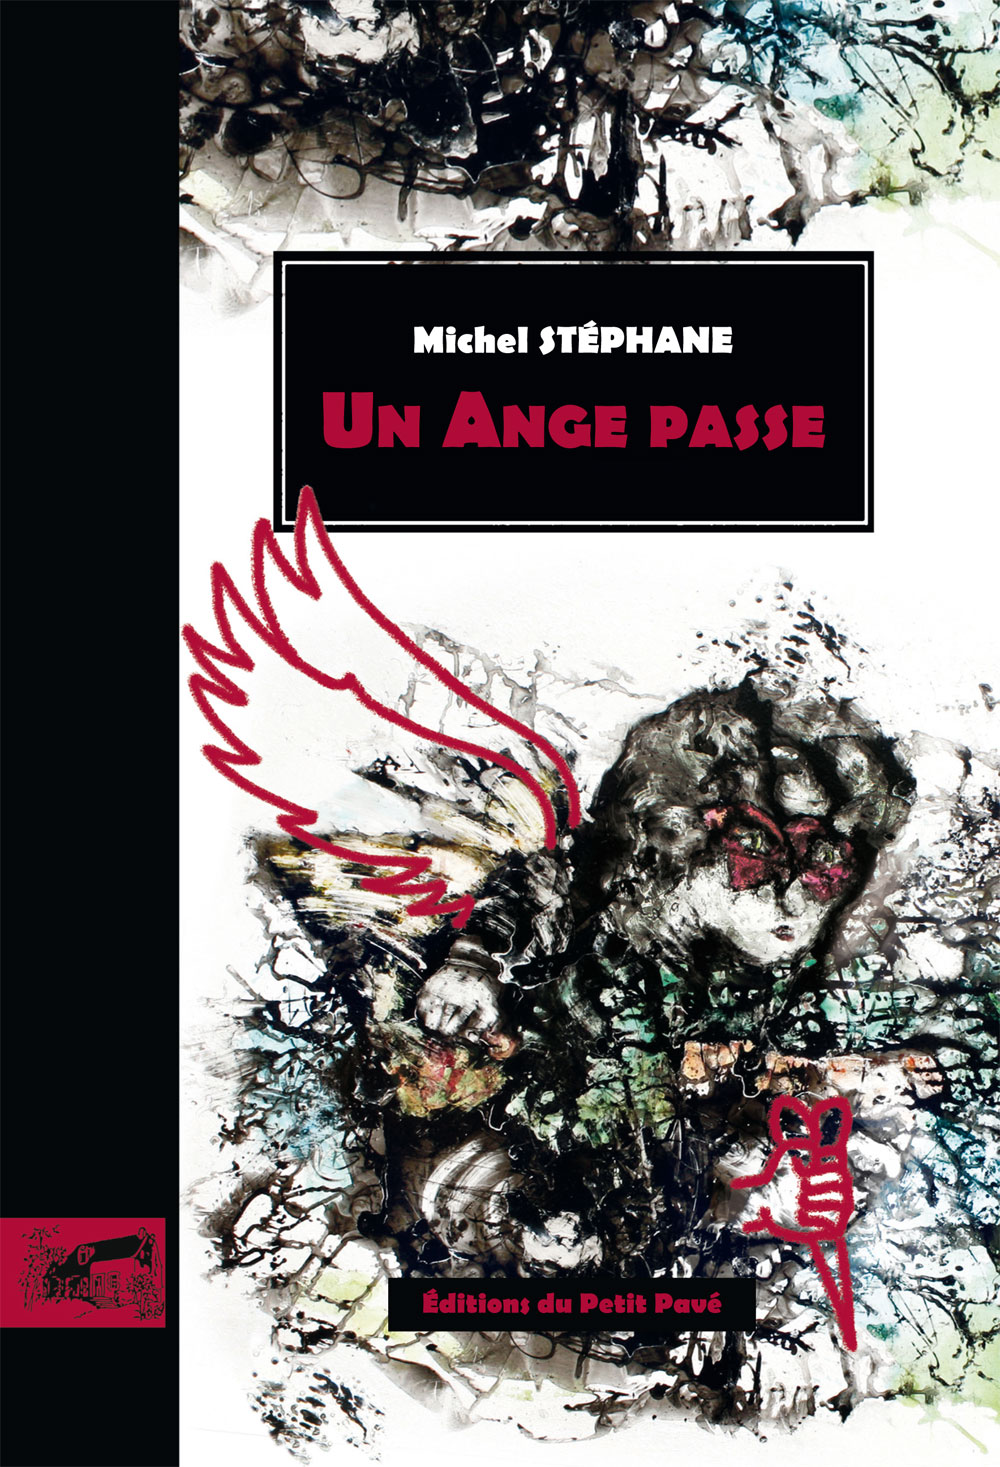 Un Ange passe - Photo un_ange_passe_stephane_michel.jpg